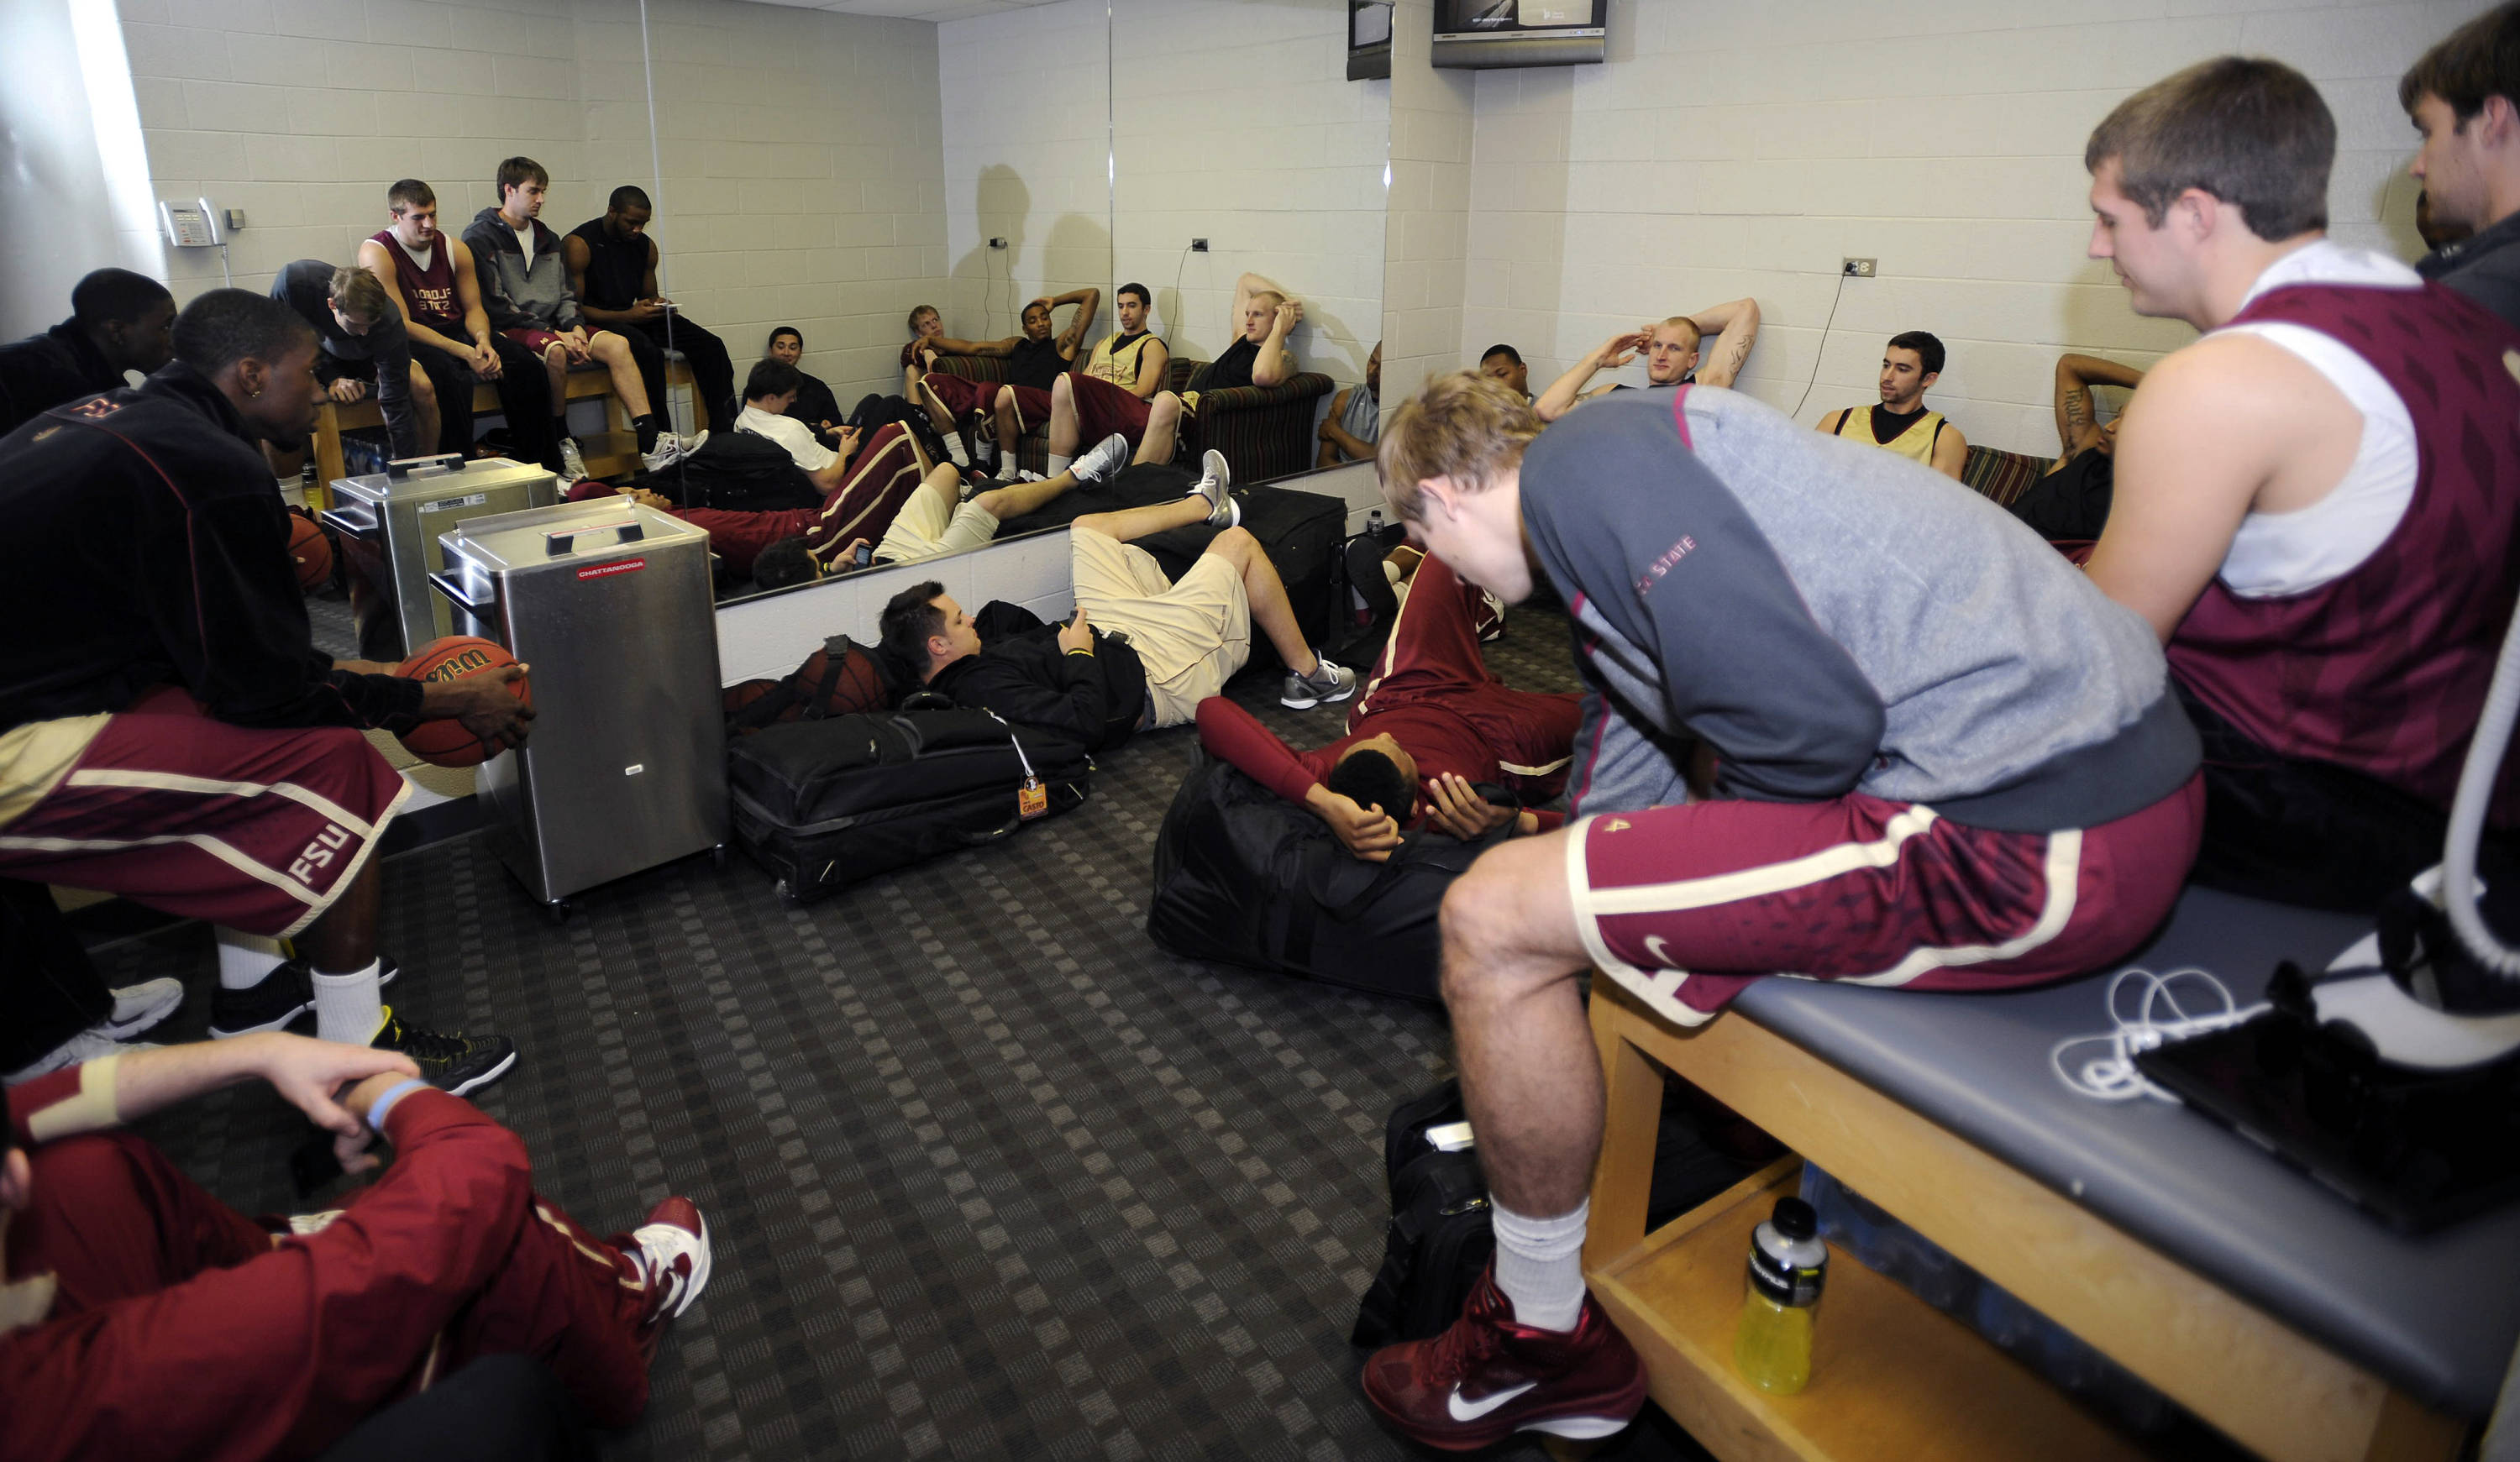 The team lounging around before practice